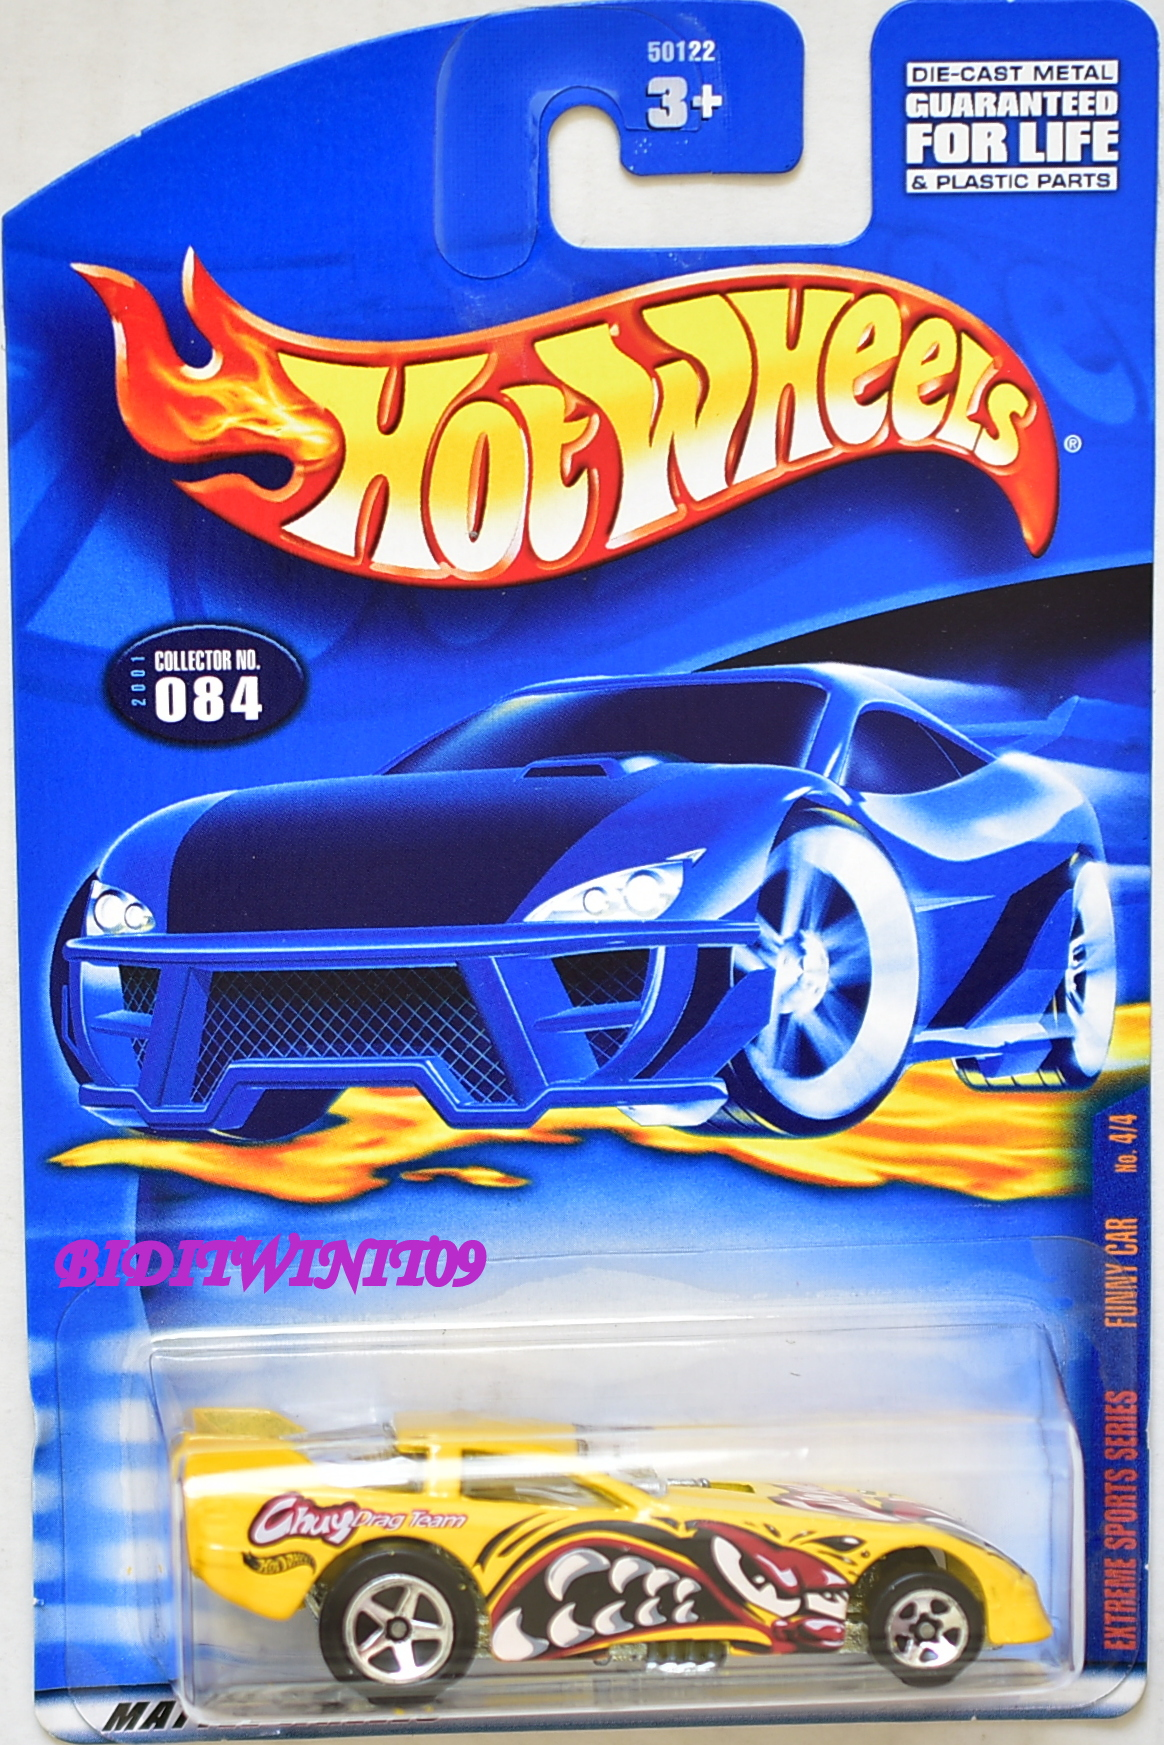 HOT WHEELS 2001 EXTREME SPORTS SERIES FUNNY CAR #084